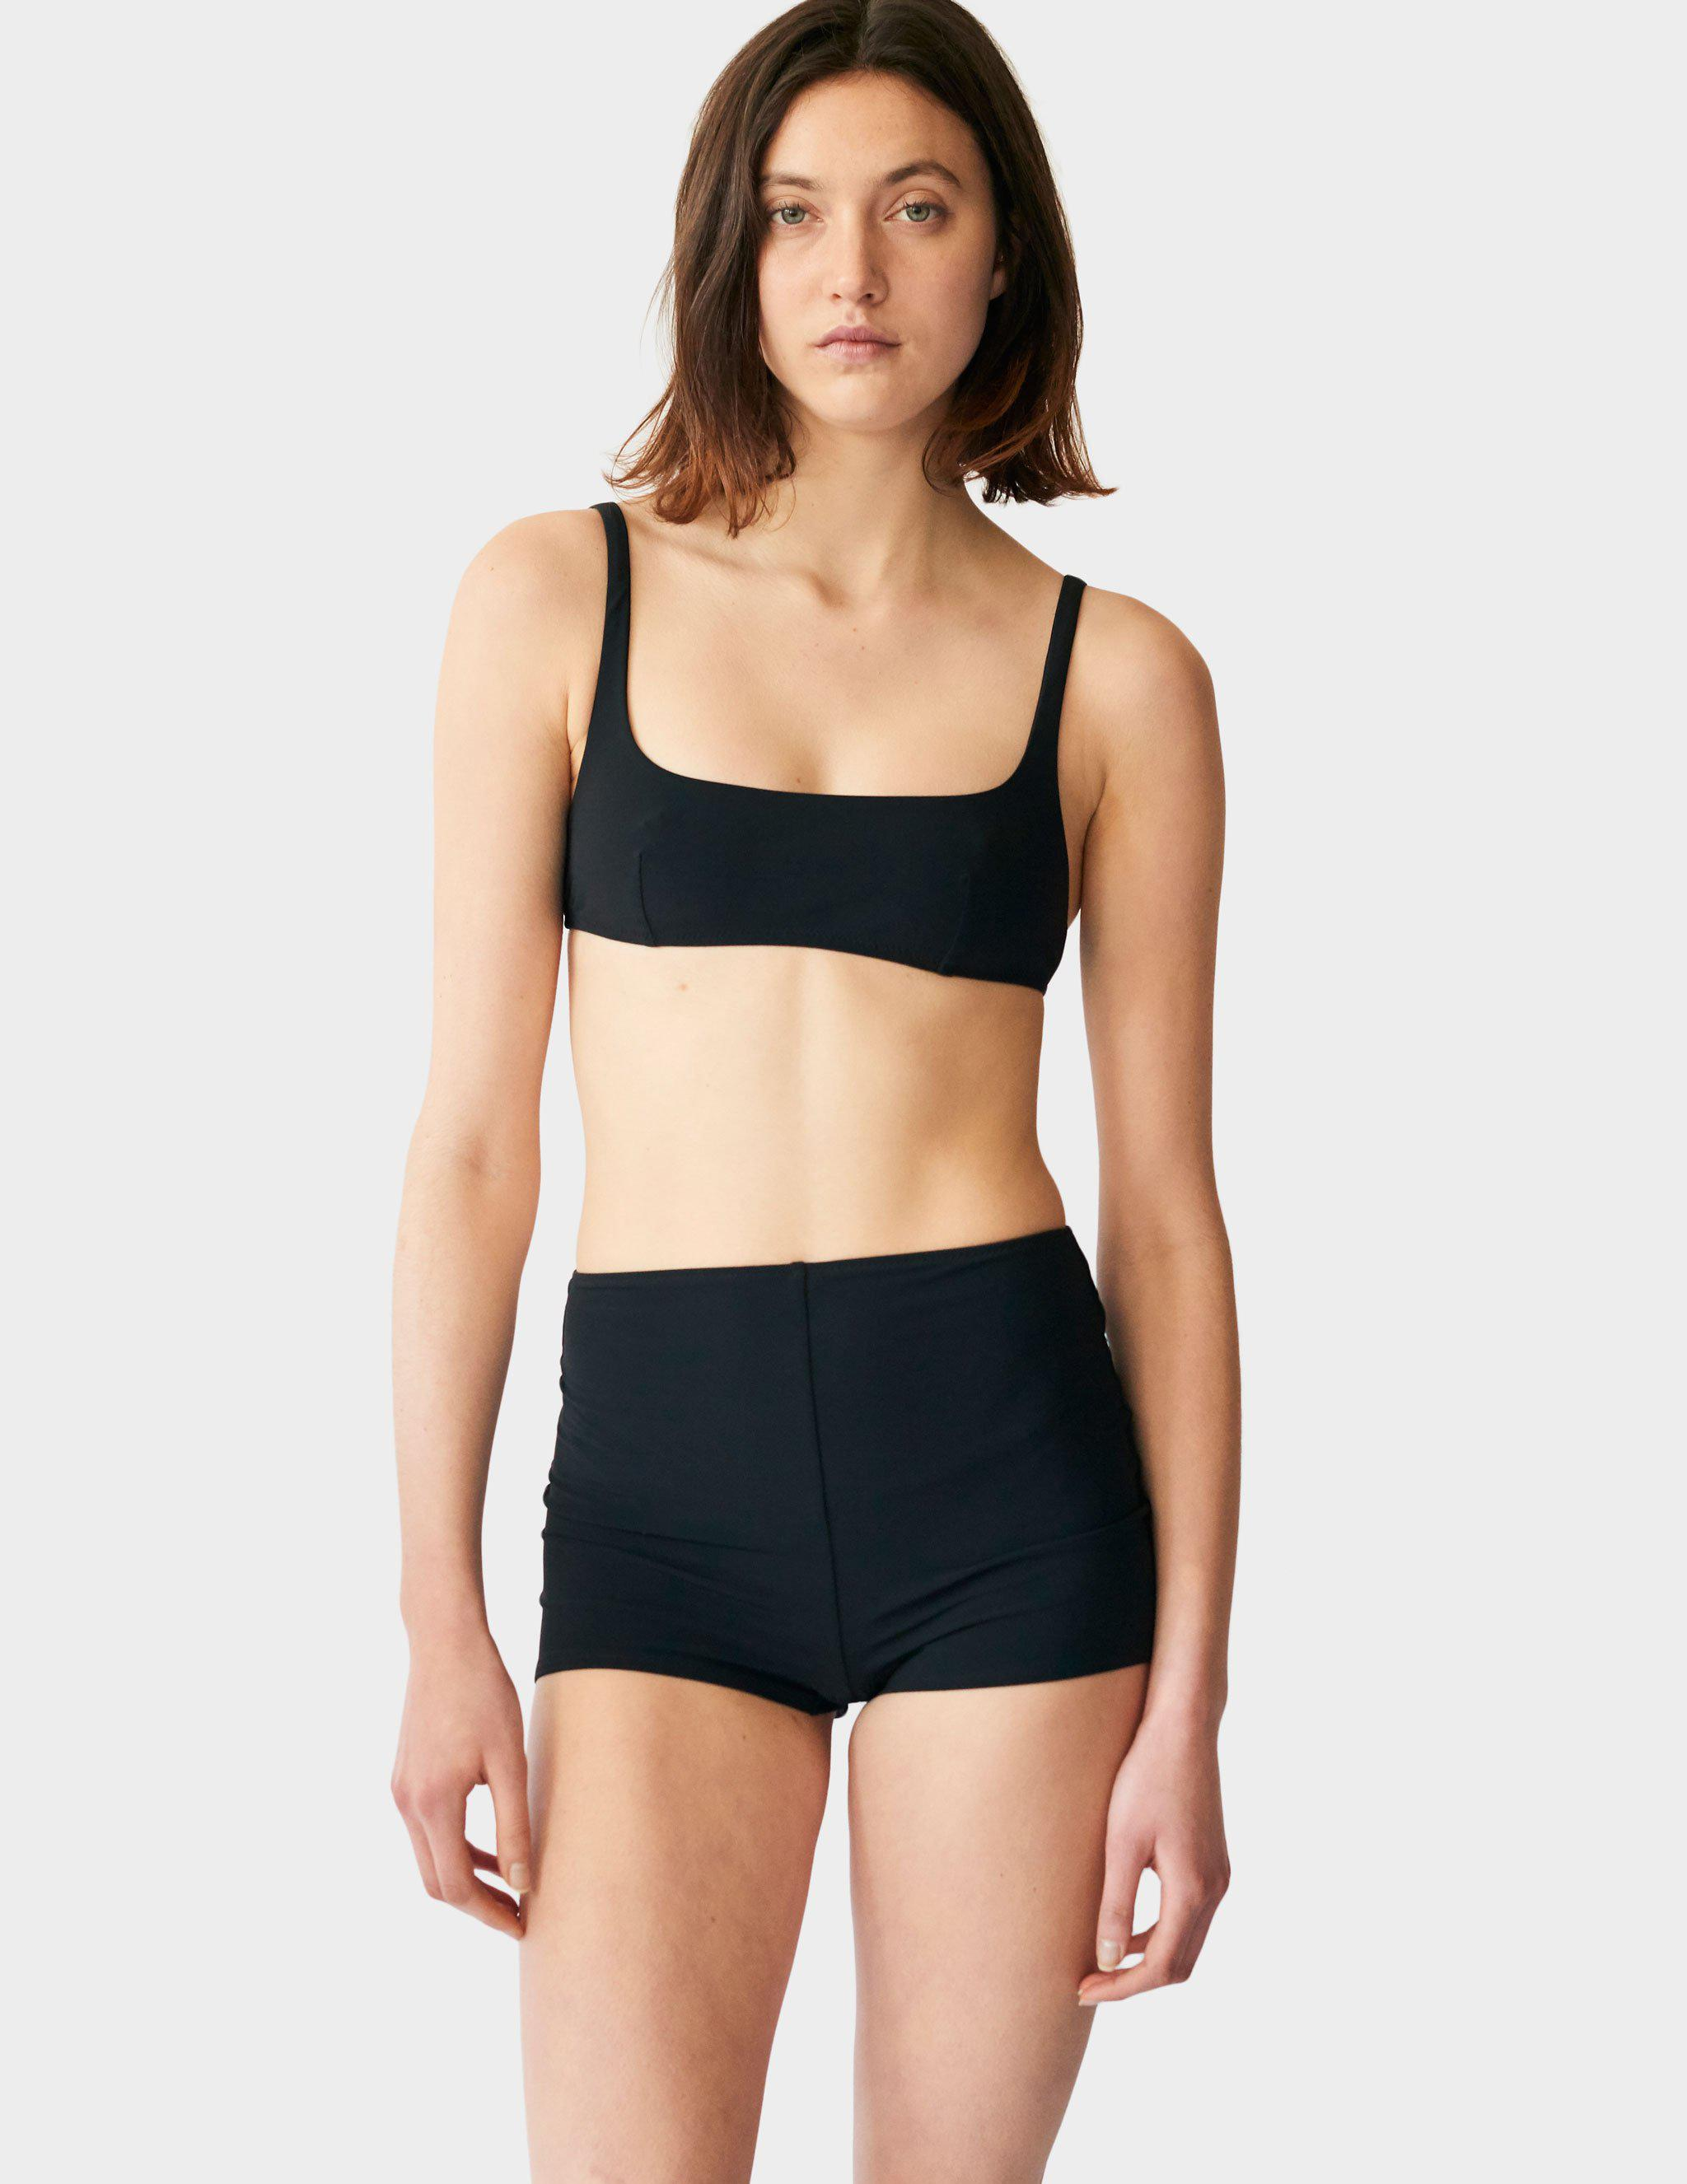 Quenton Short Black